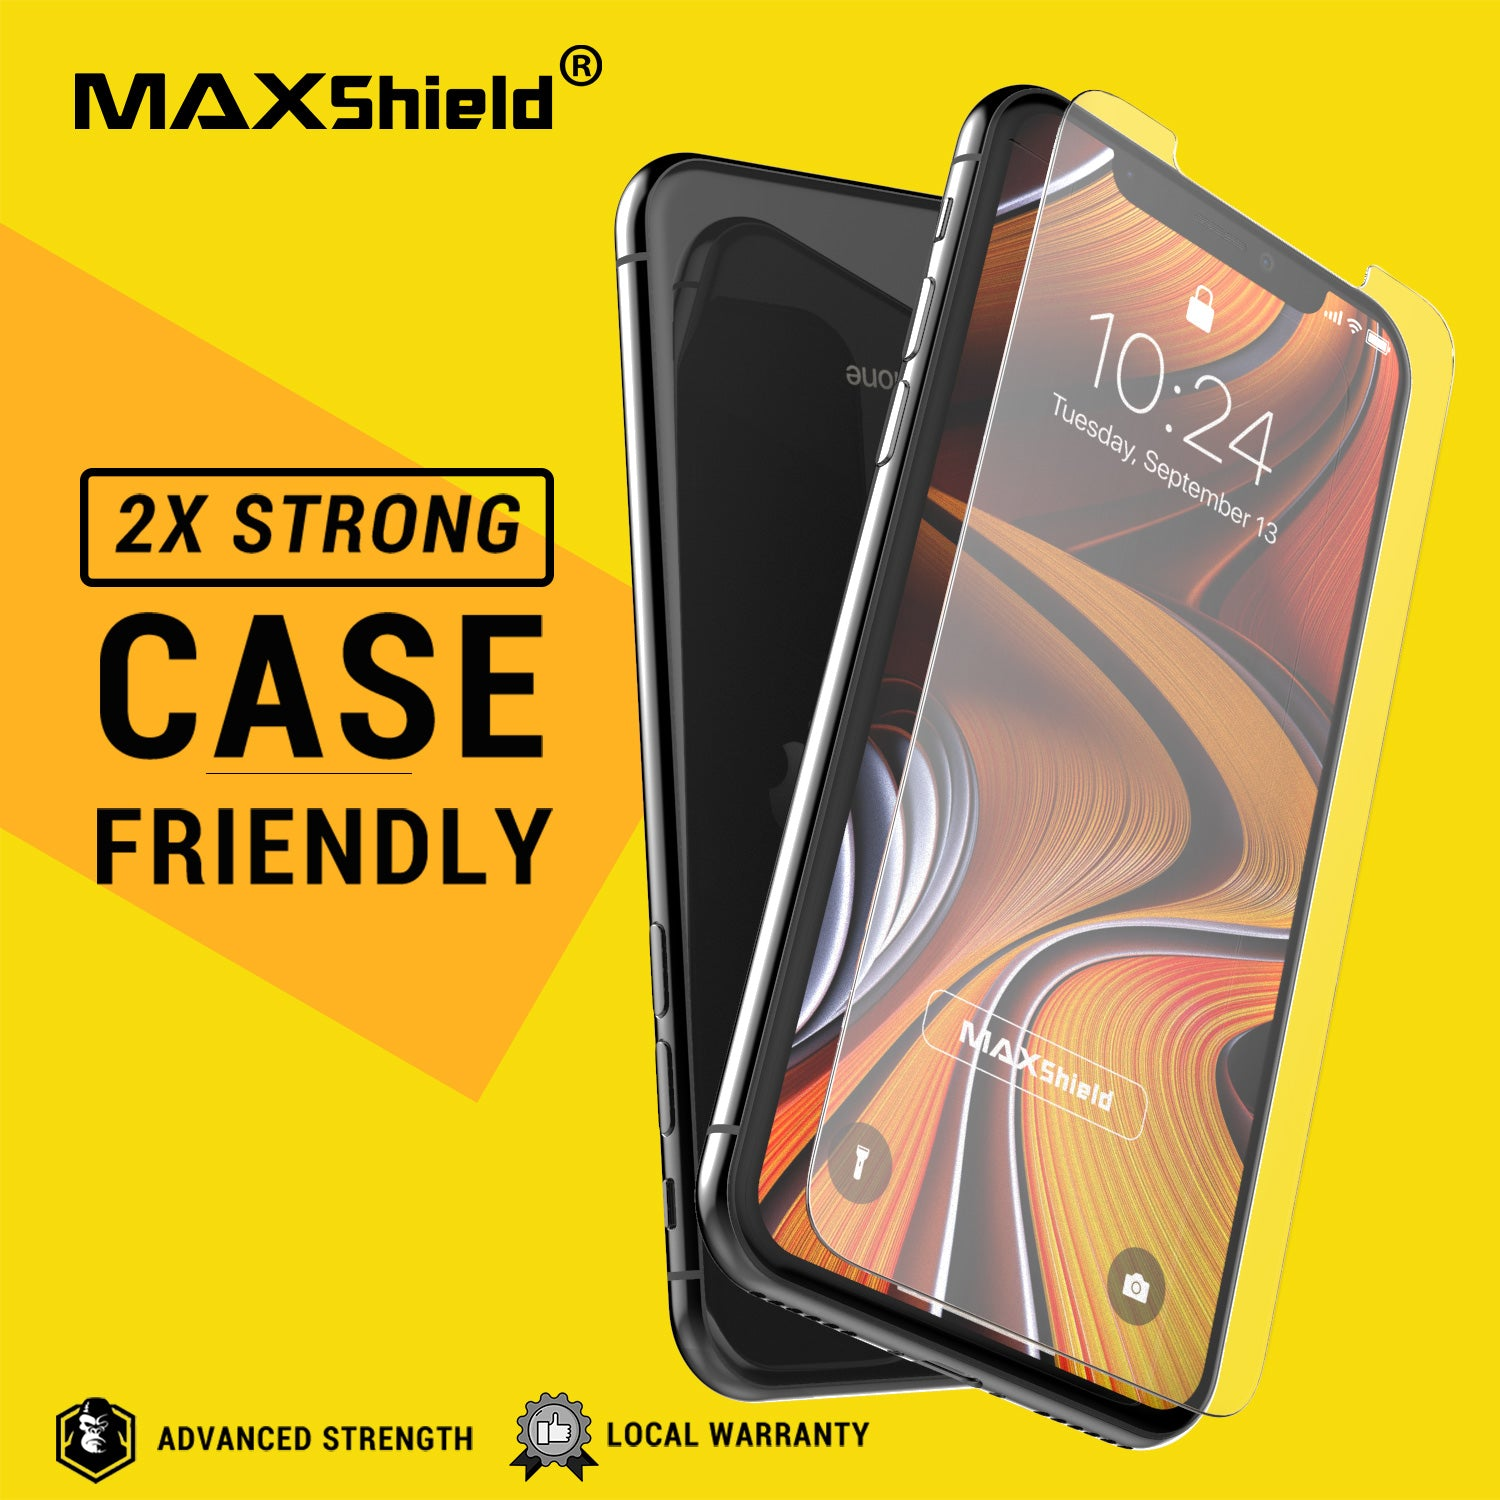 Apple iPhone XI 11 Pro Case, GLASS SCREEN PROTECTOR, MAXSHIELD PROTECTOR